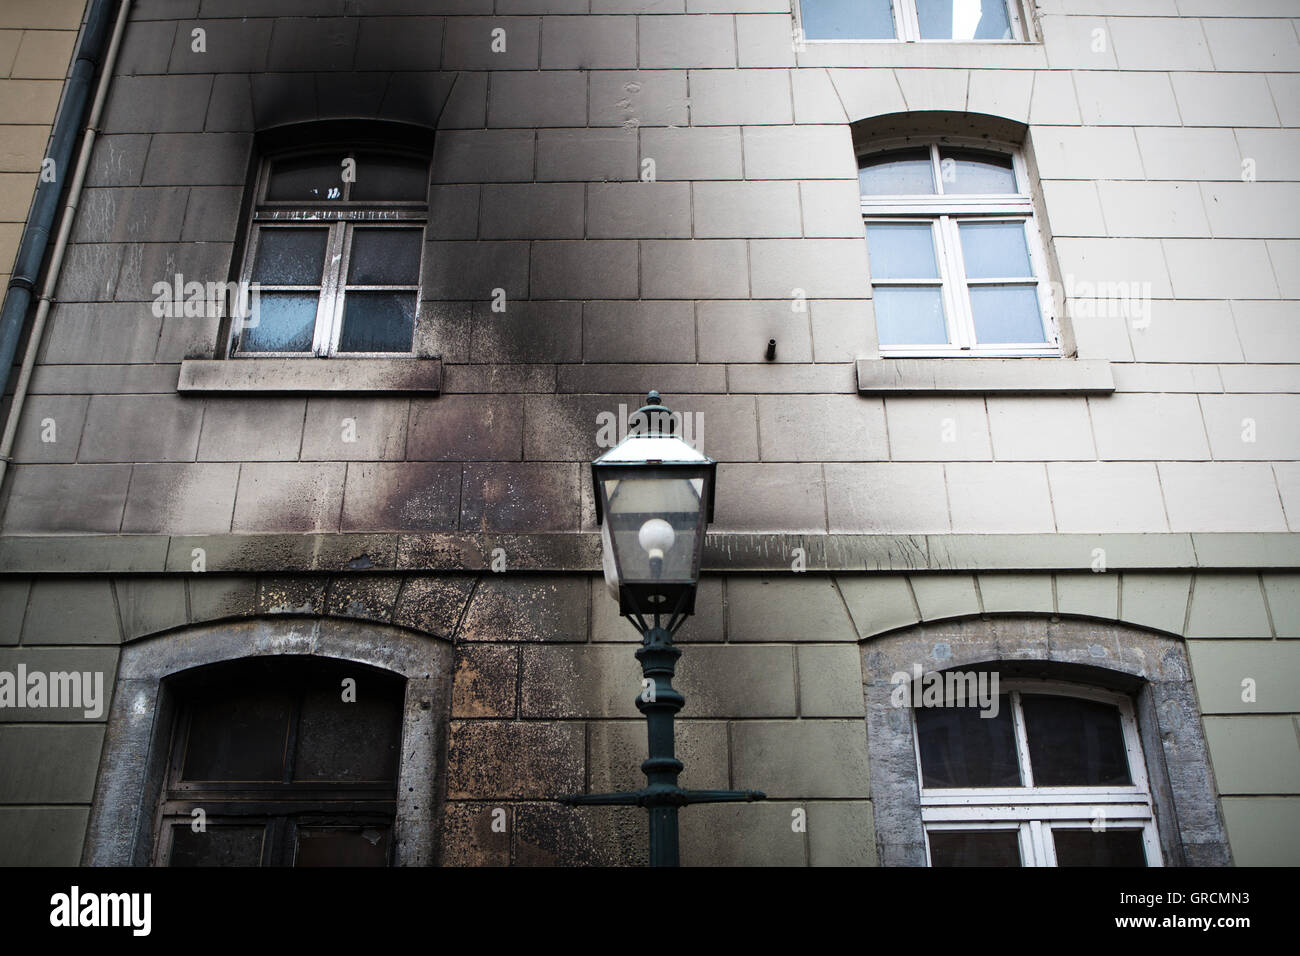 Contaminated Facade Soot After A Fire - Stock Image